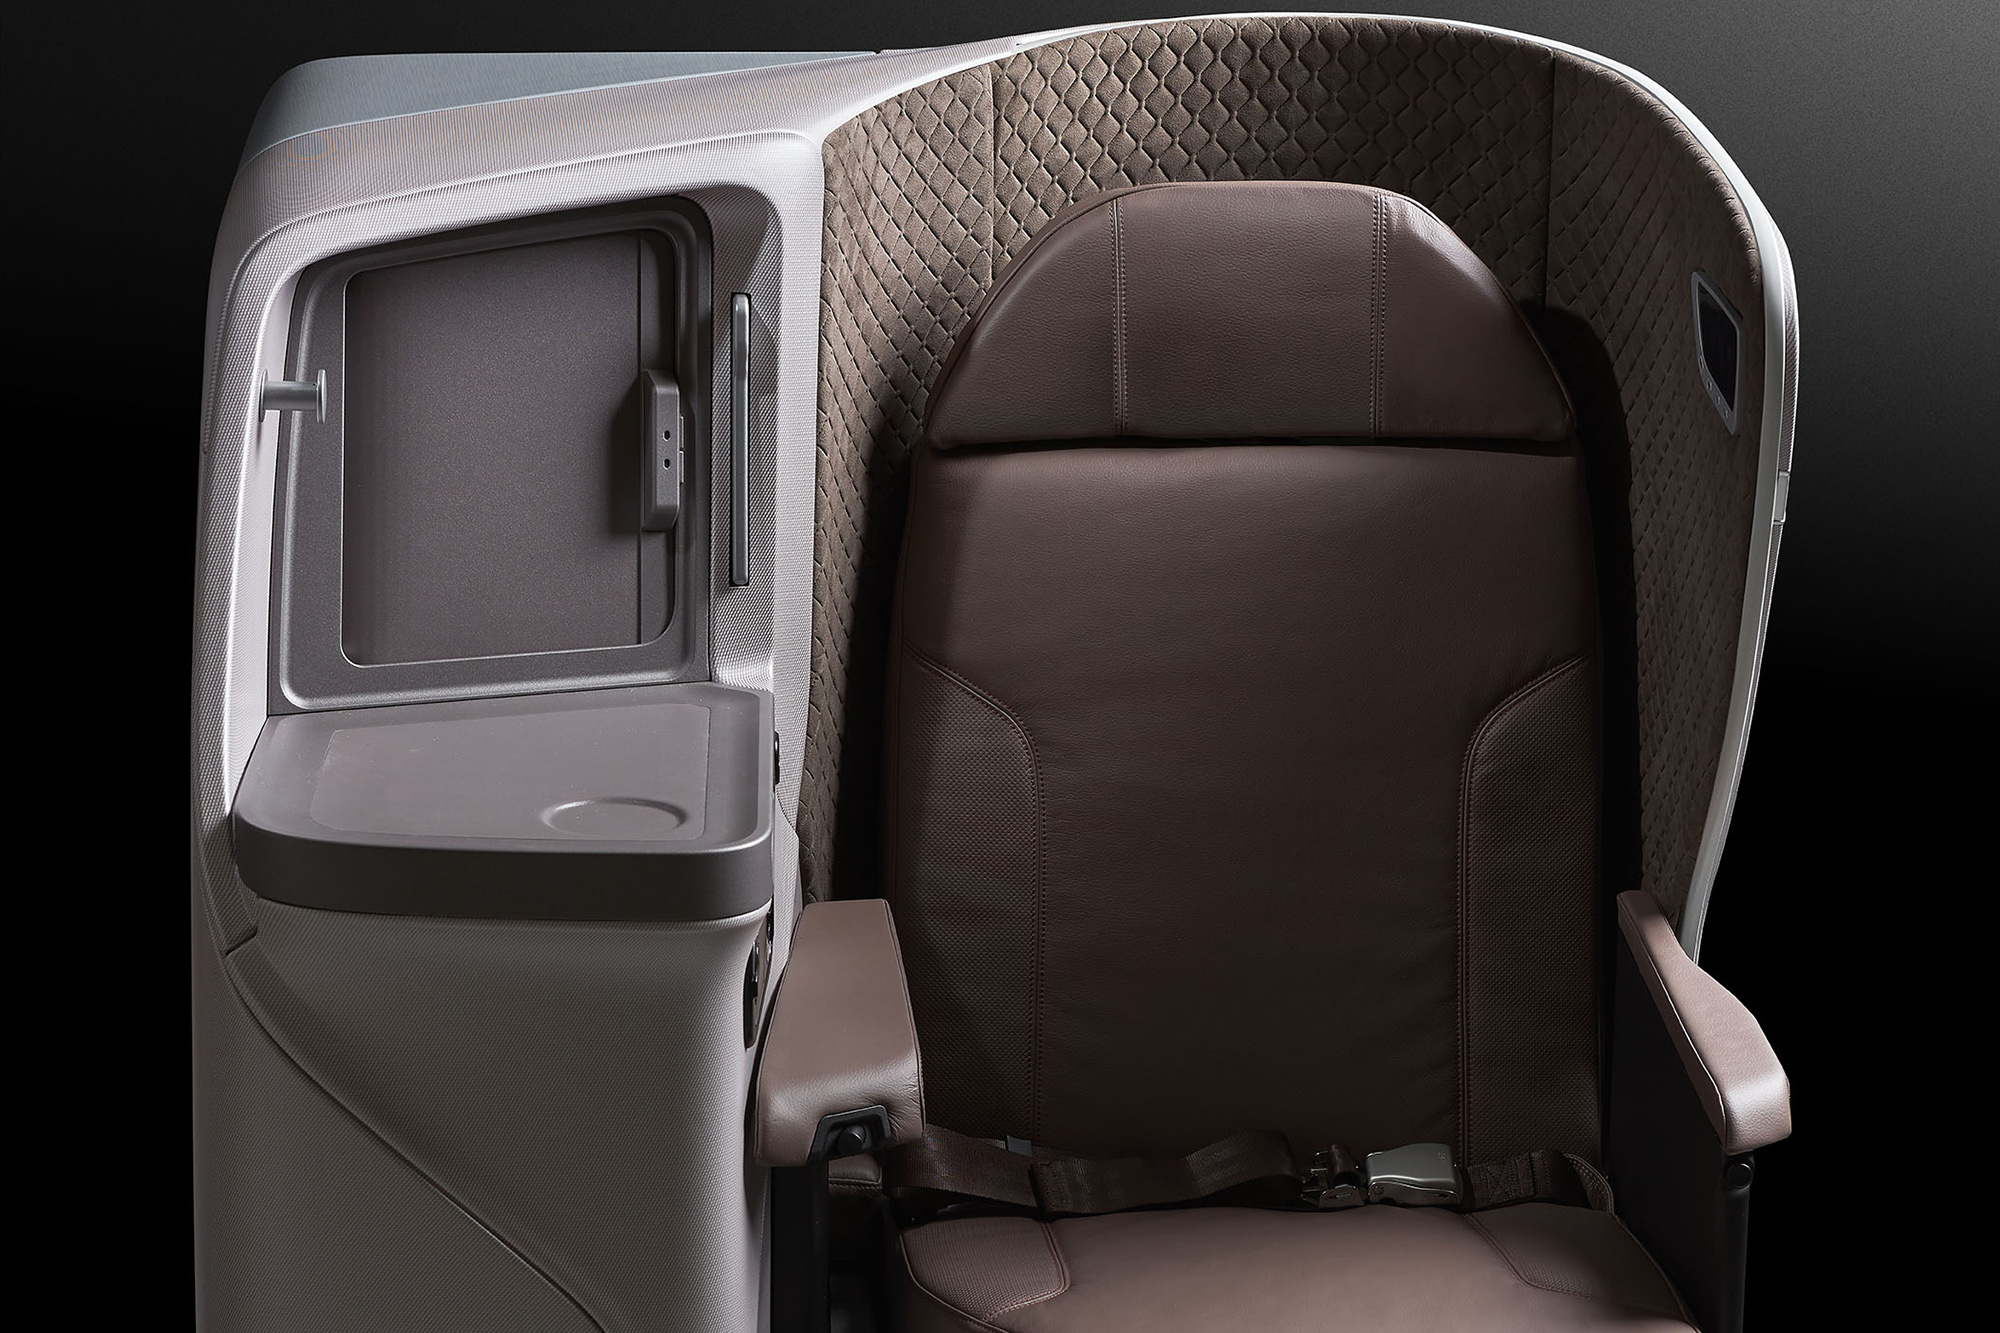 SIA's new Regional Business Class seats now outnumber the 2009 version